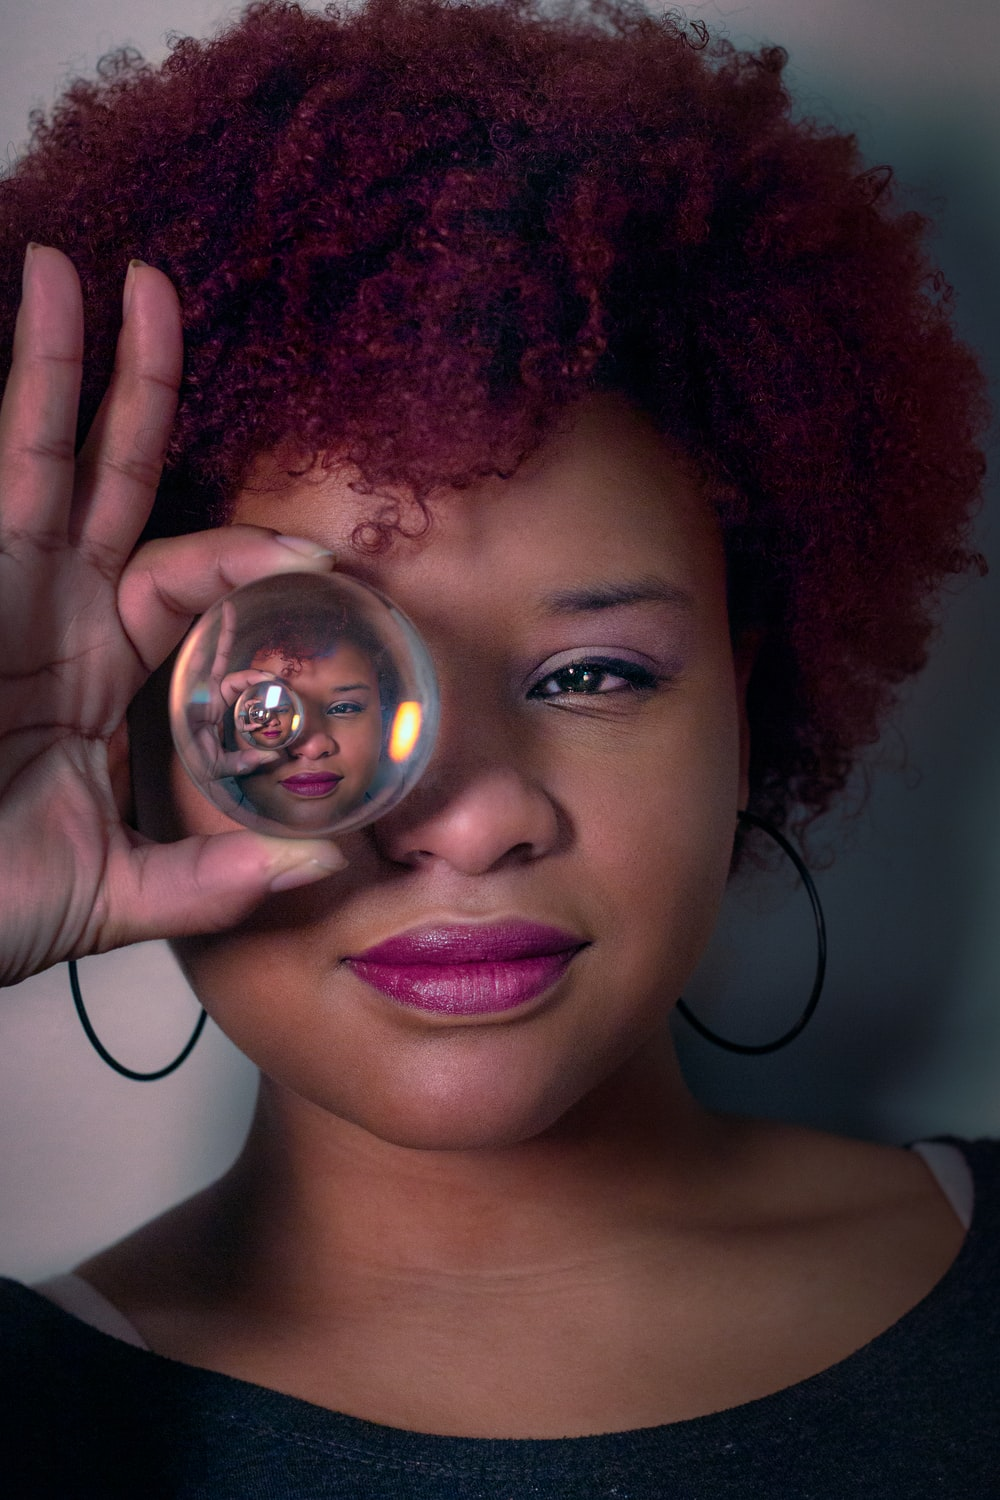 woman holding covering right eye with clear glass ball